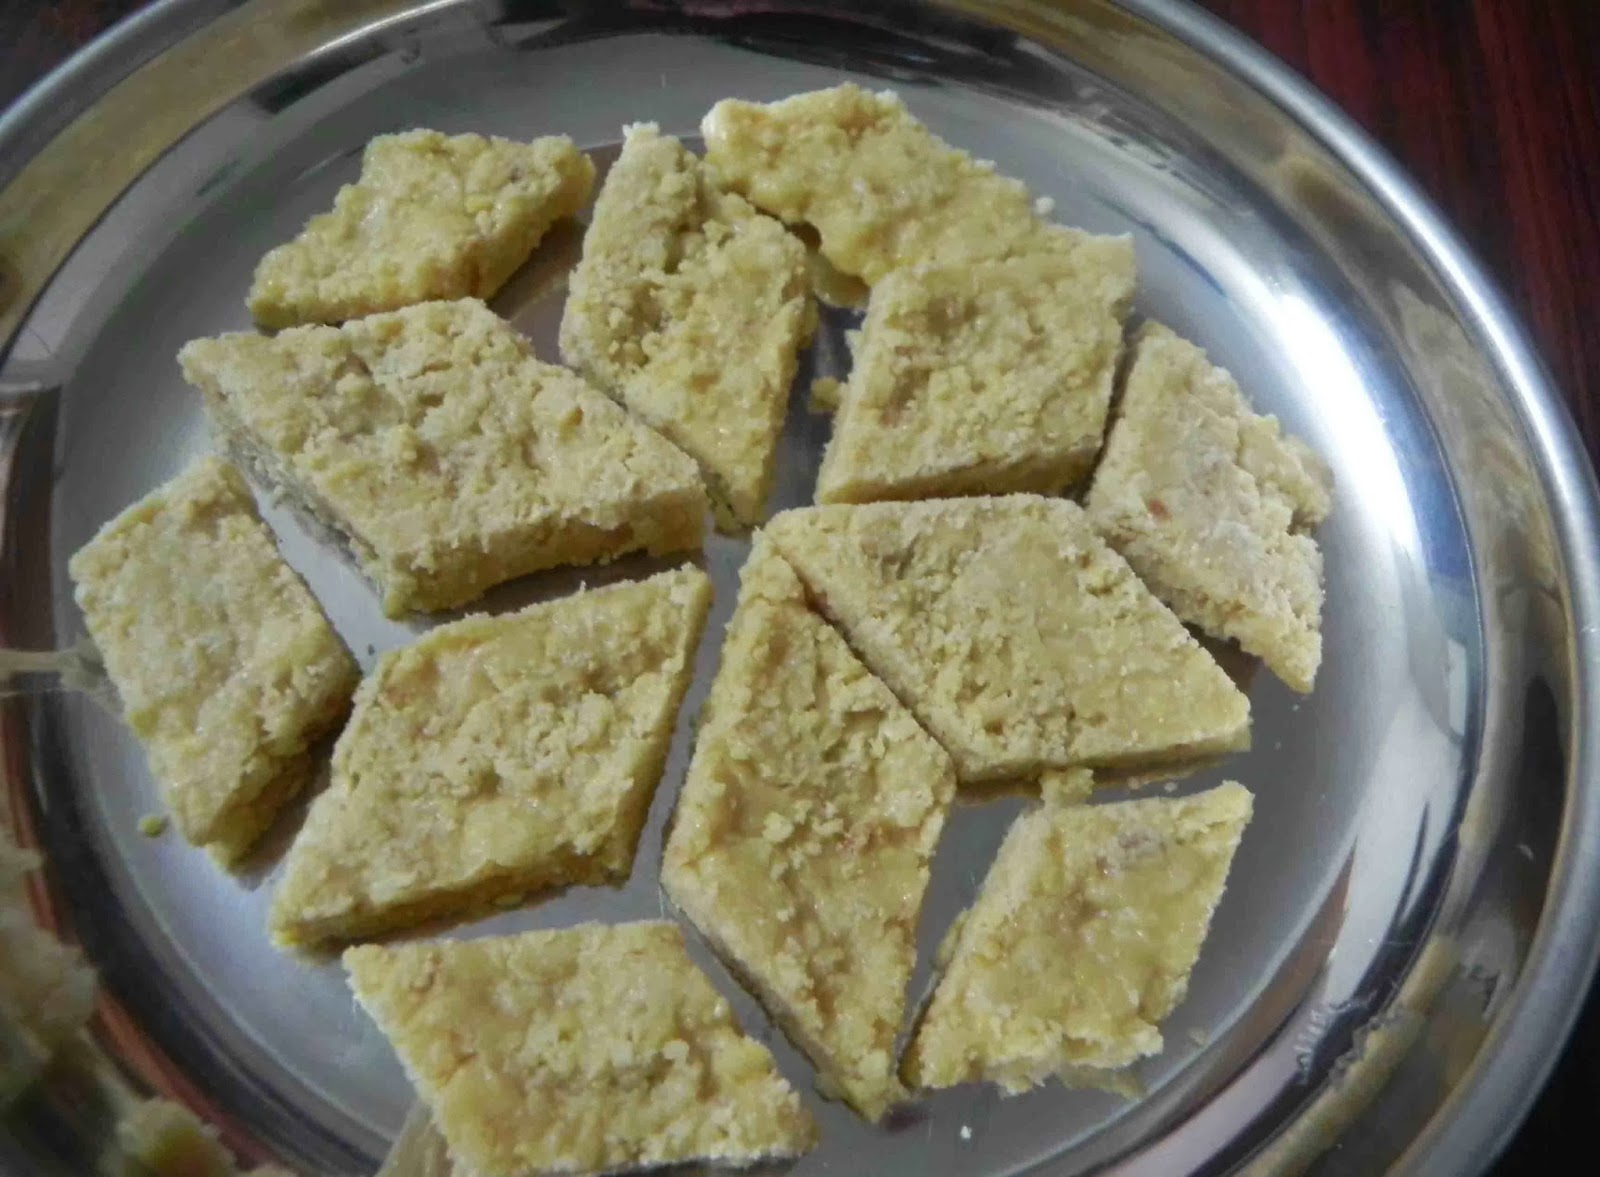 Indian sweets 7 cup sweet seven cup burfi recipe delicious indian sweets 7 cup sweet seven cup burfi recipe forumfinder Image collections